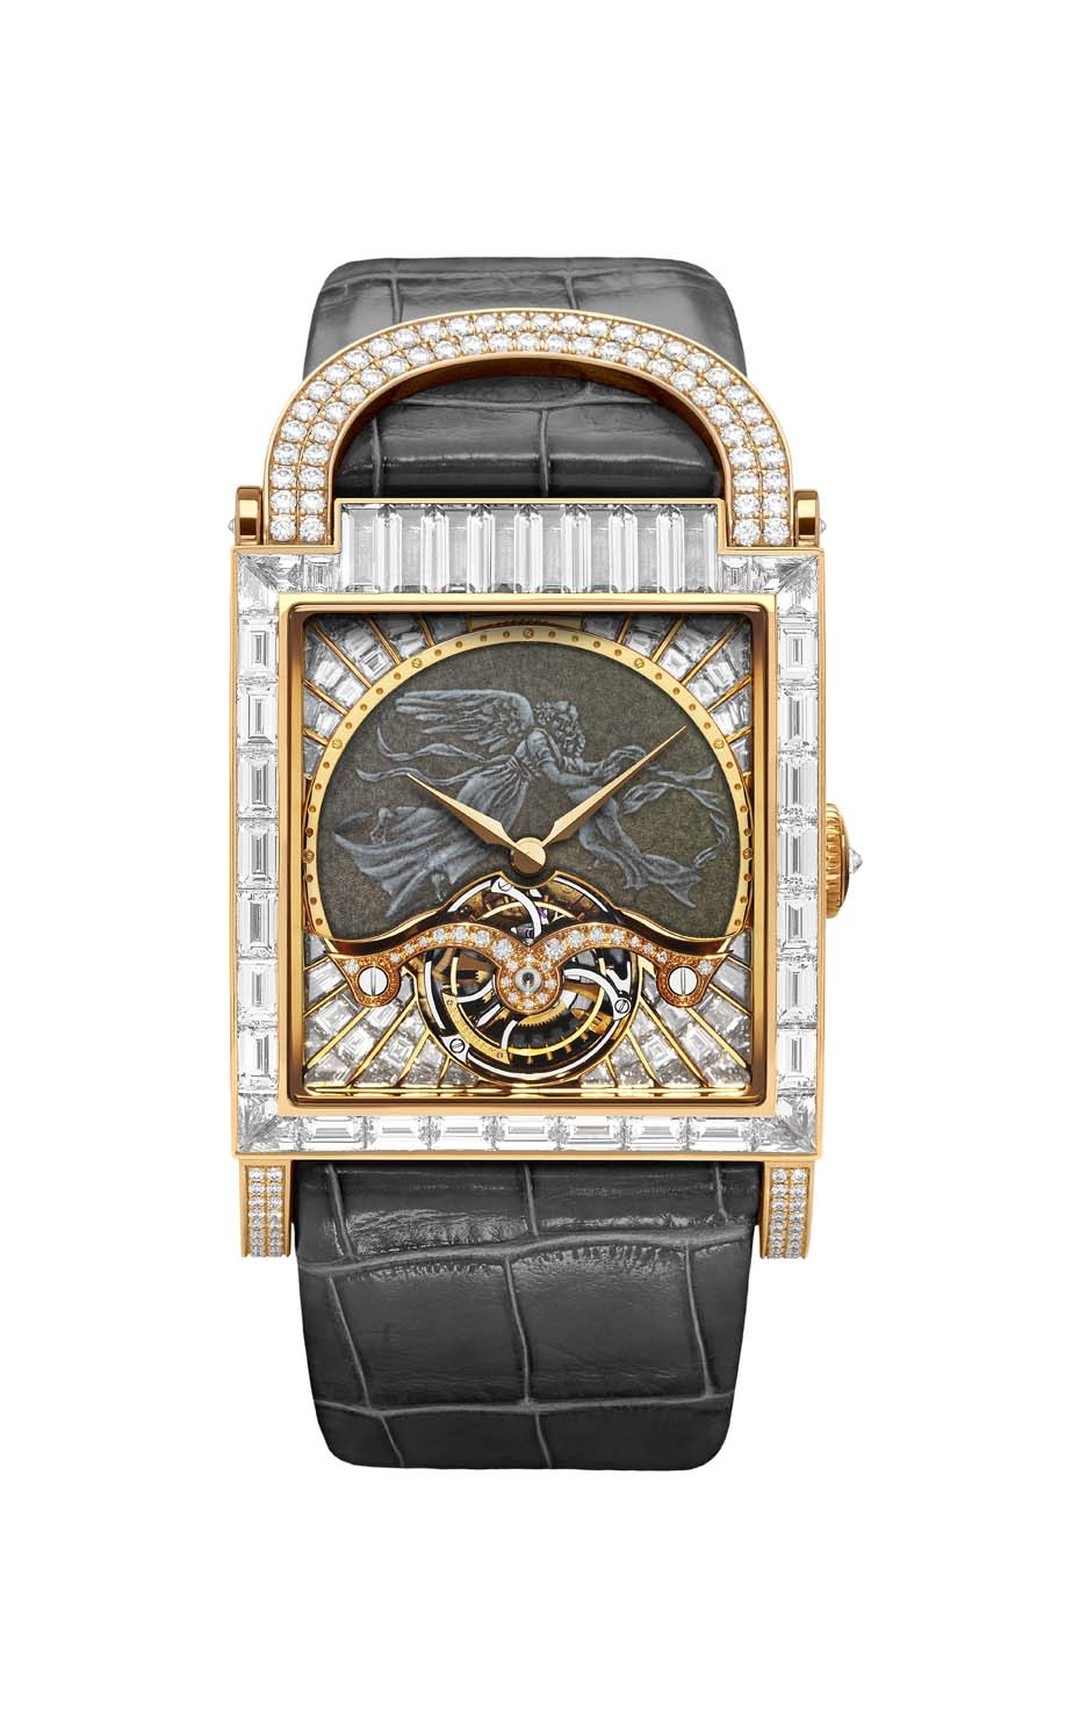 DeLaneau's Angel watch features a grand feu enamel dial depicting an angel, framed by large baguette-cut diamonds. Inside the red gold case is a manual-winding movement that animates the hours, minutes and elegant tourbillon at 6 o'clock.